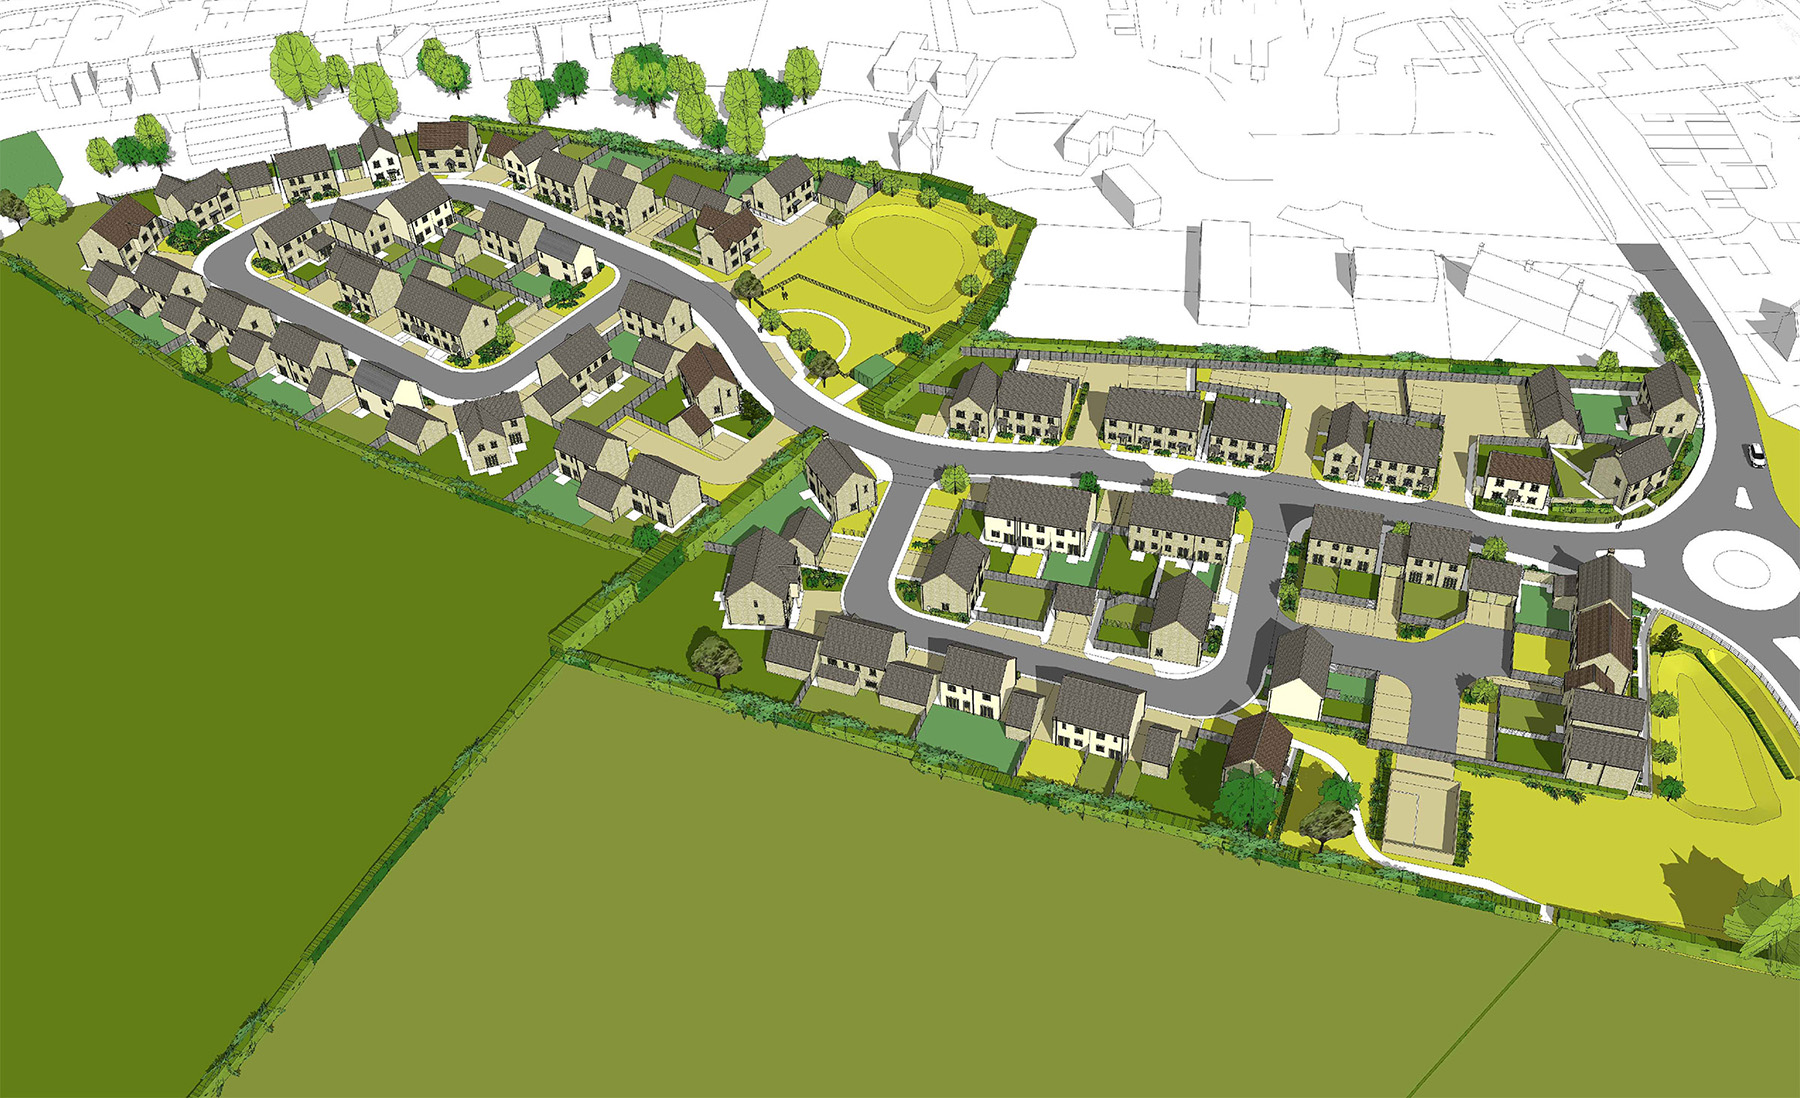 An artists impression of how an aerial view may look once the houses are built